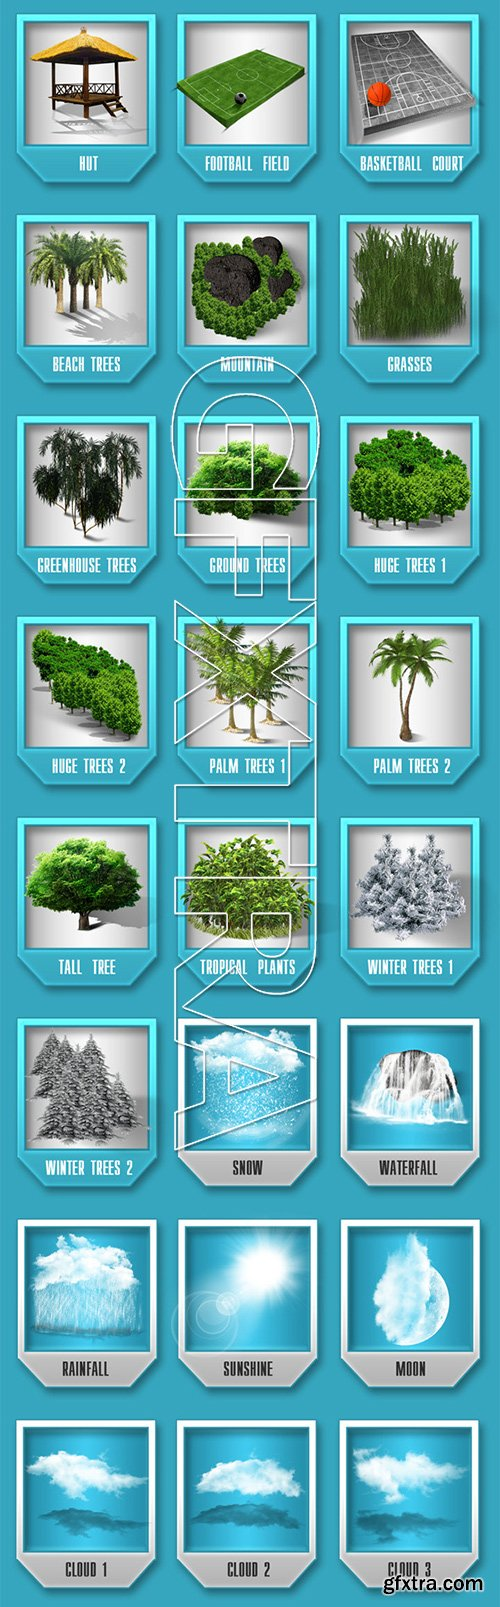 Graphicriver world 3d map generator 1318816 vector photoshop graphicriver world 3d map generator 1318816 gumiabroncs Choice Image